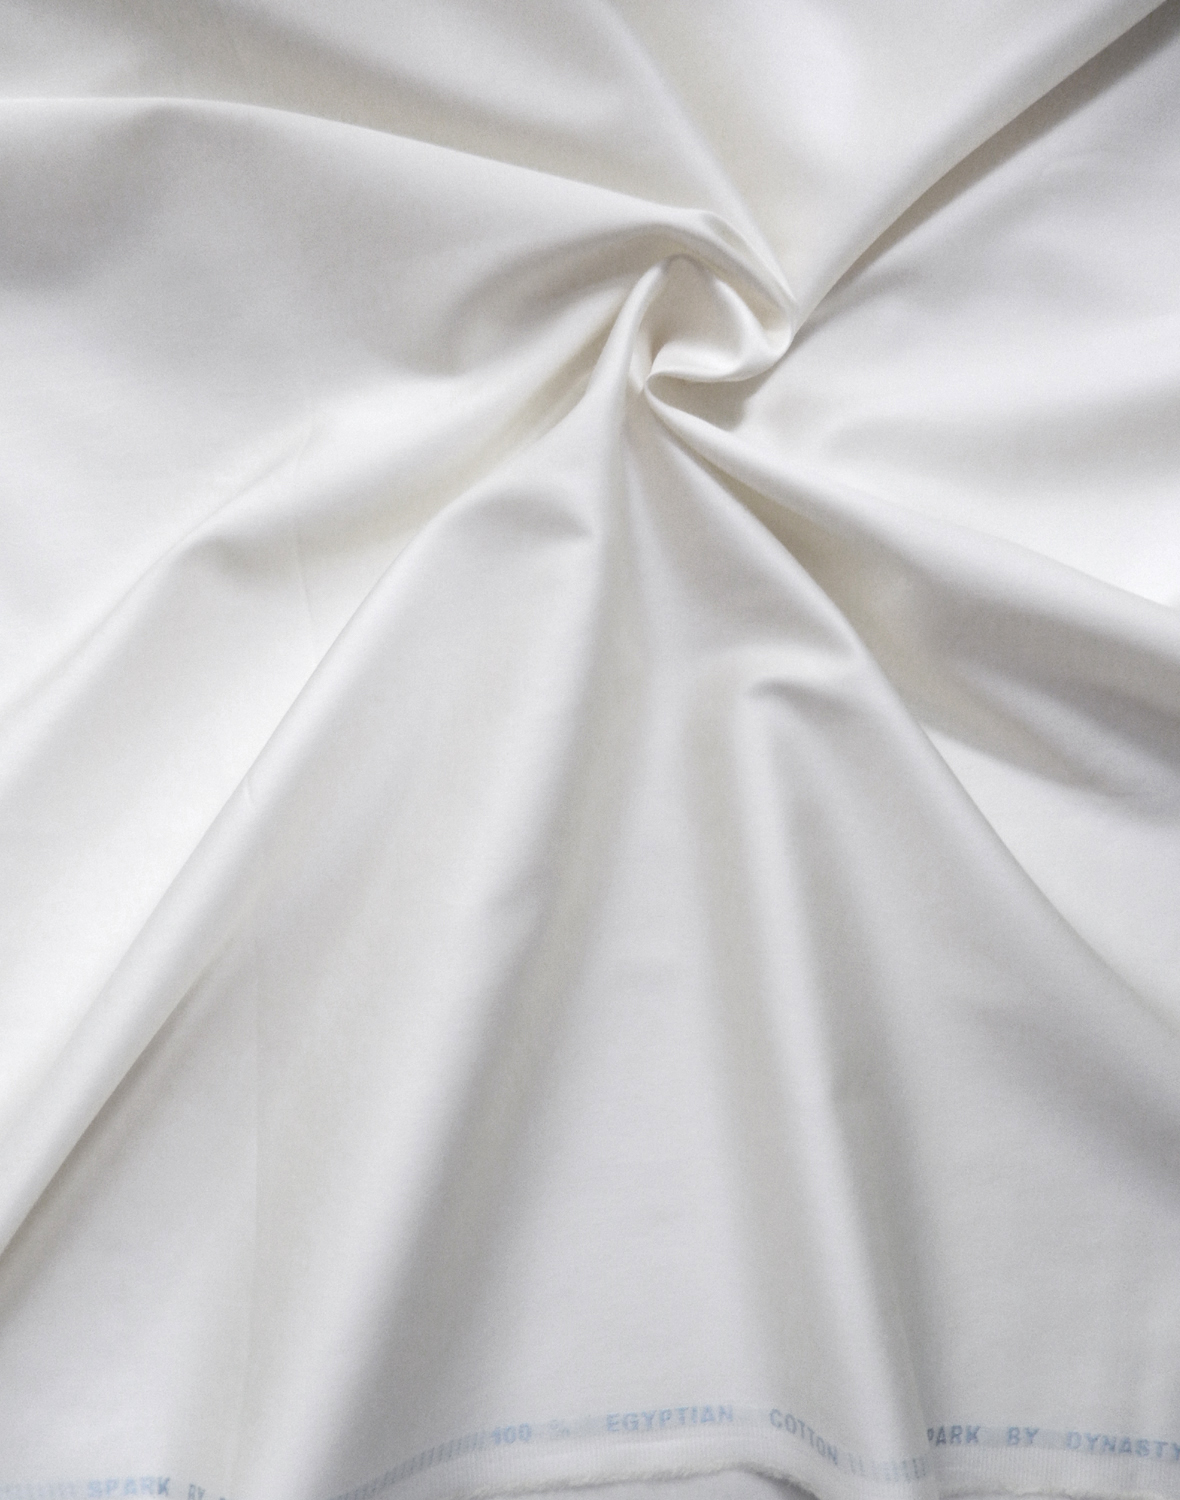 Giza Egyptian Cotton Natural White